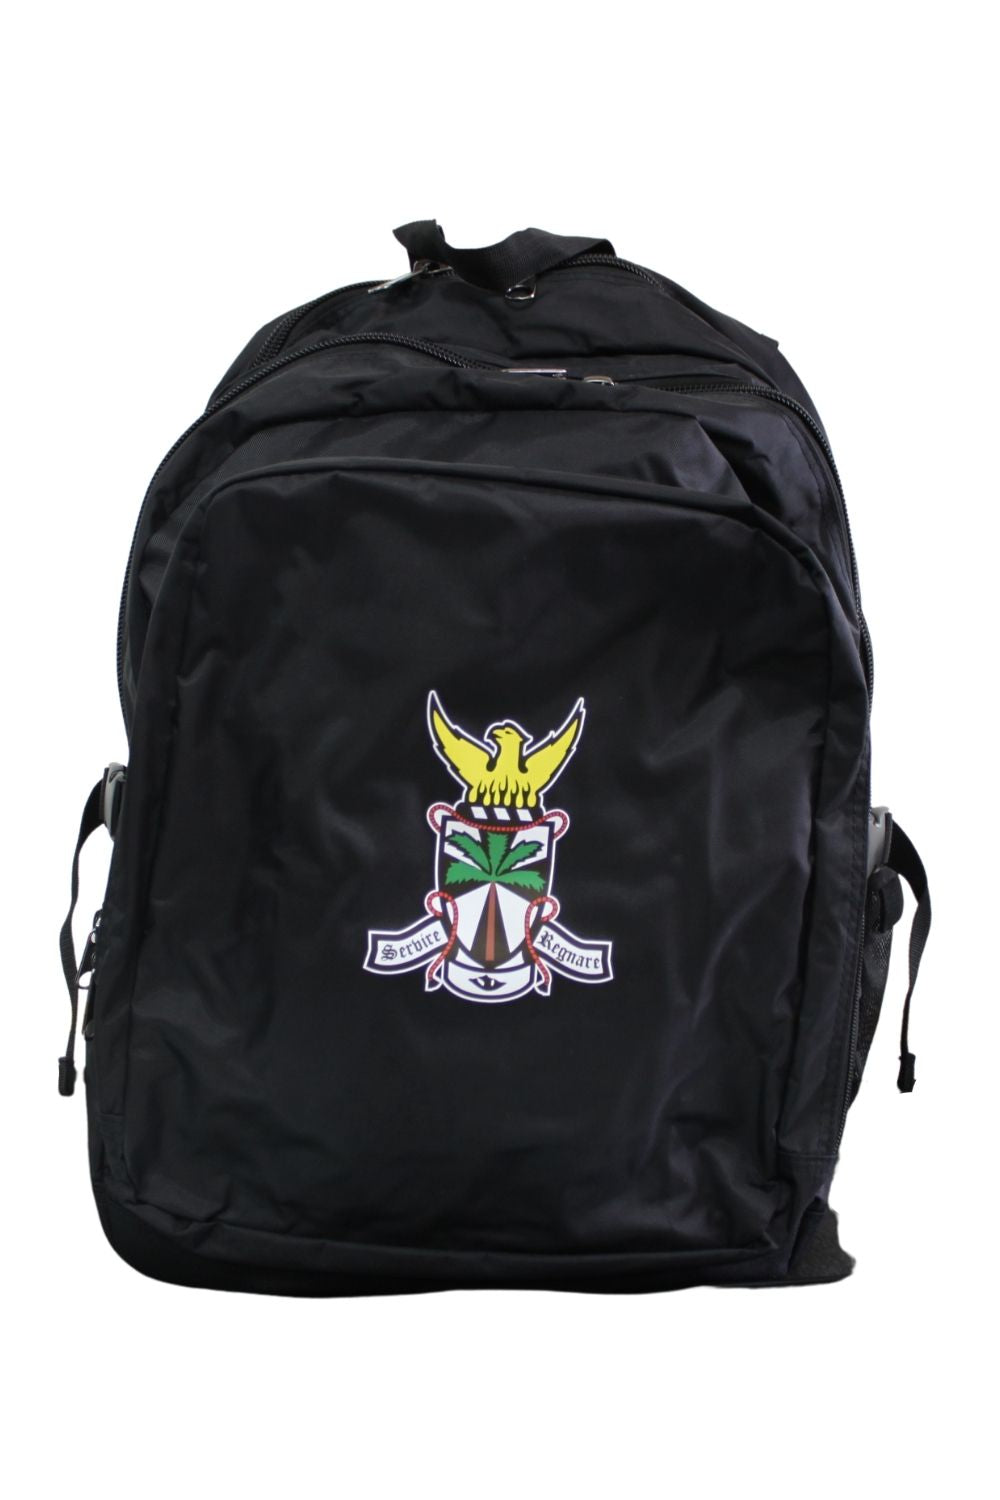 ASSG Senior Back Pack